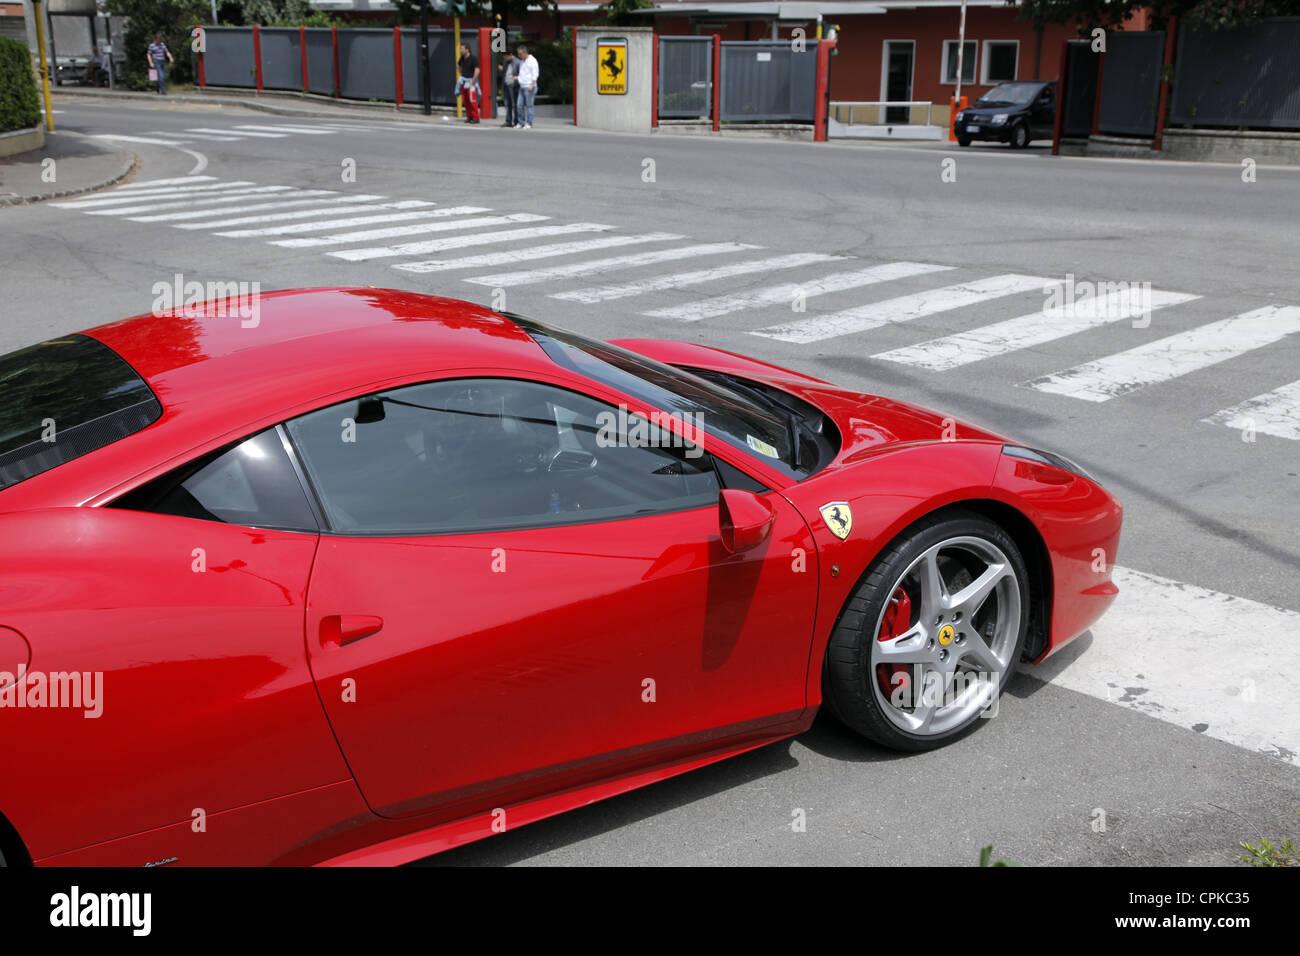 RED FERRARI 458 CAR U0026 FACTORY GATES MARANELLO ITALY 08 May 2012   Stock  Image